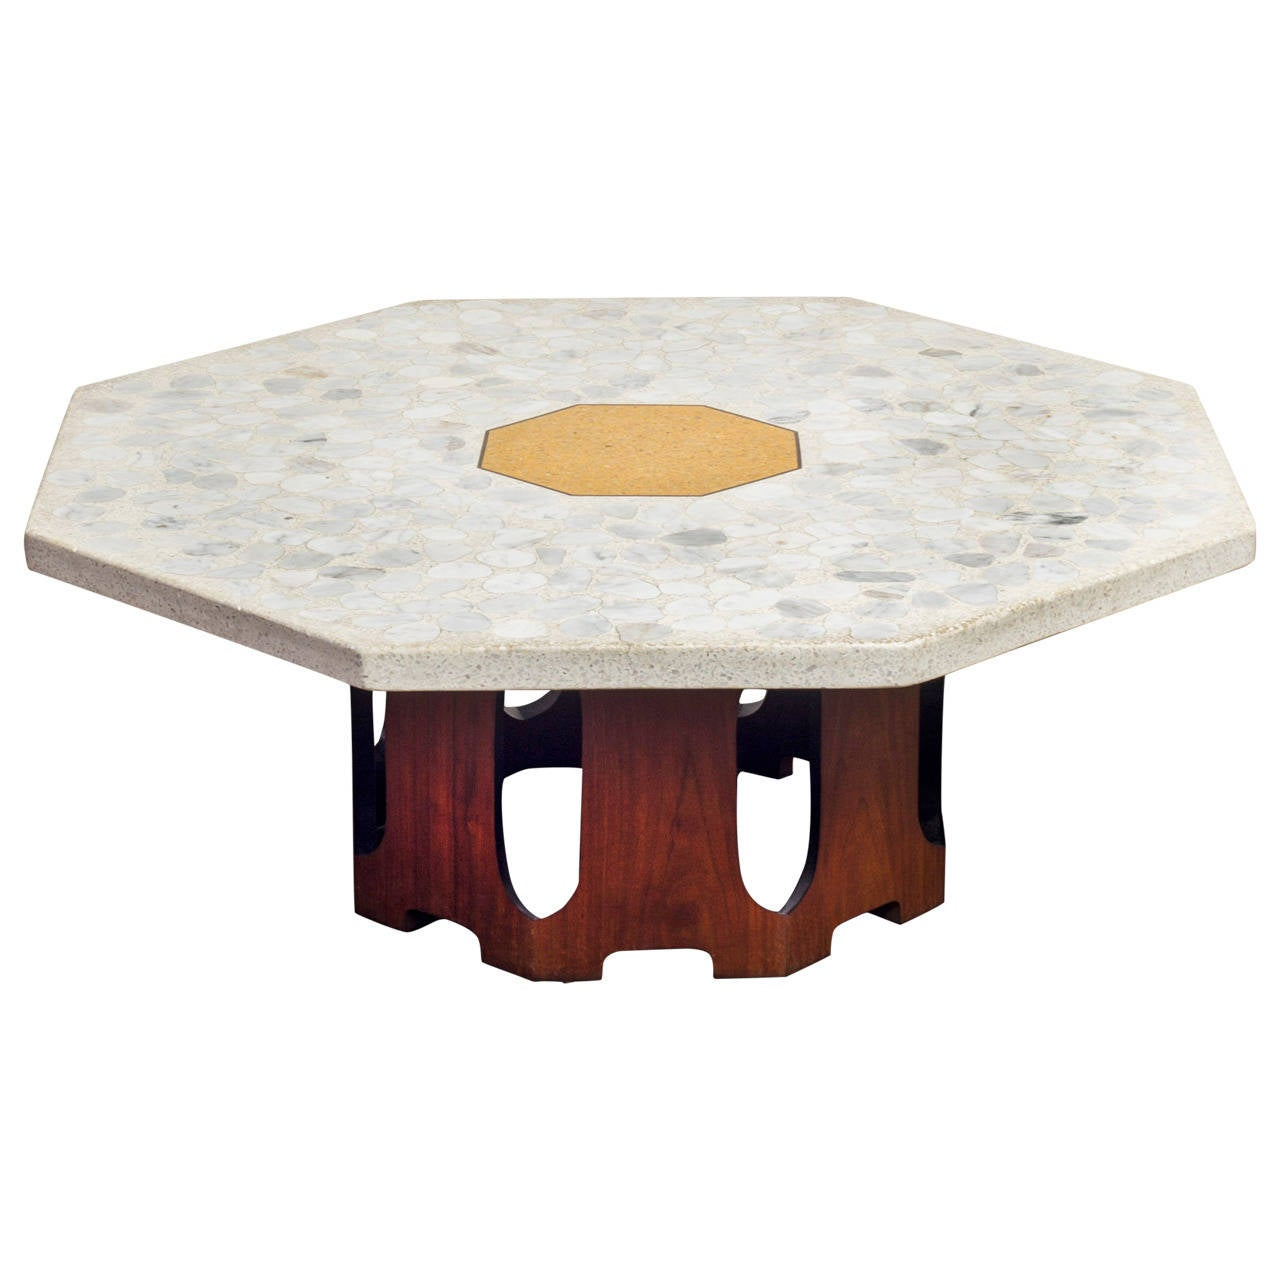 Octagonal Terrazzo Coffee Table With Walnut Base By Harvey Probber At 1stdibs